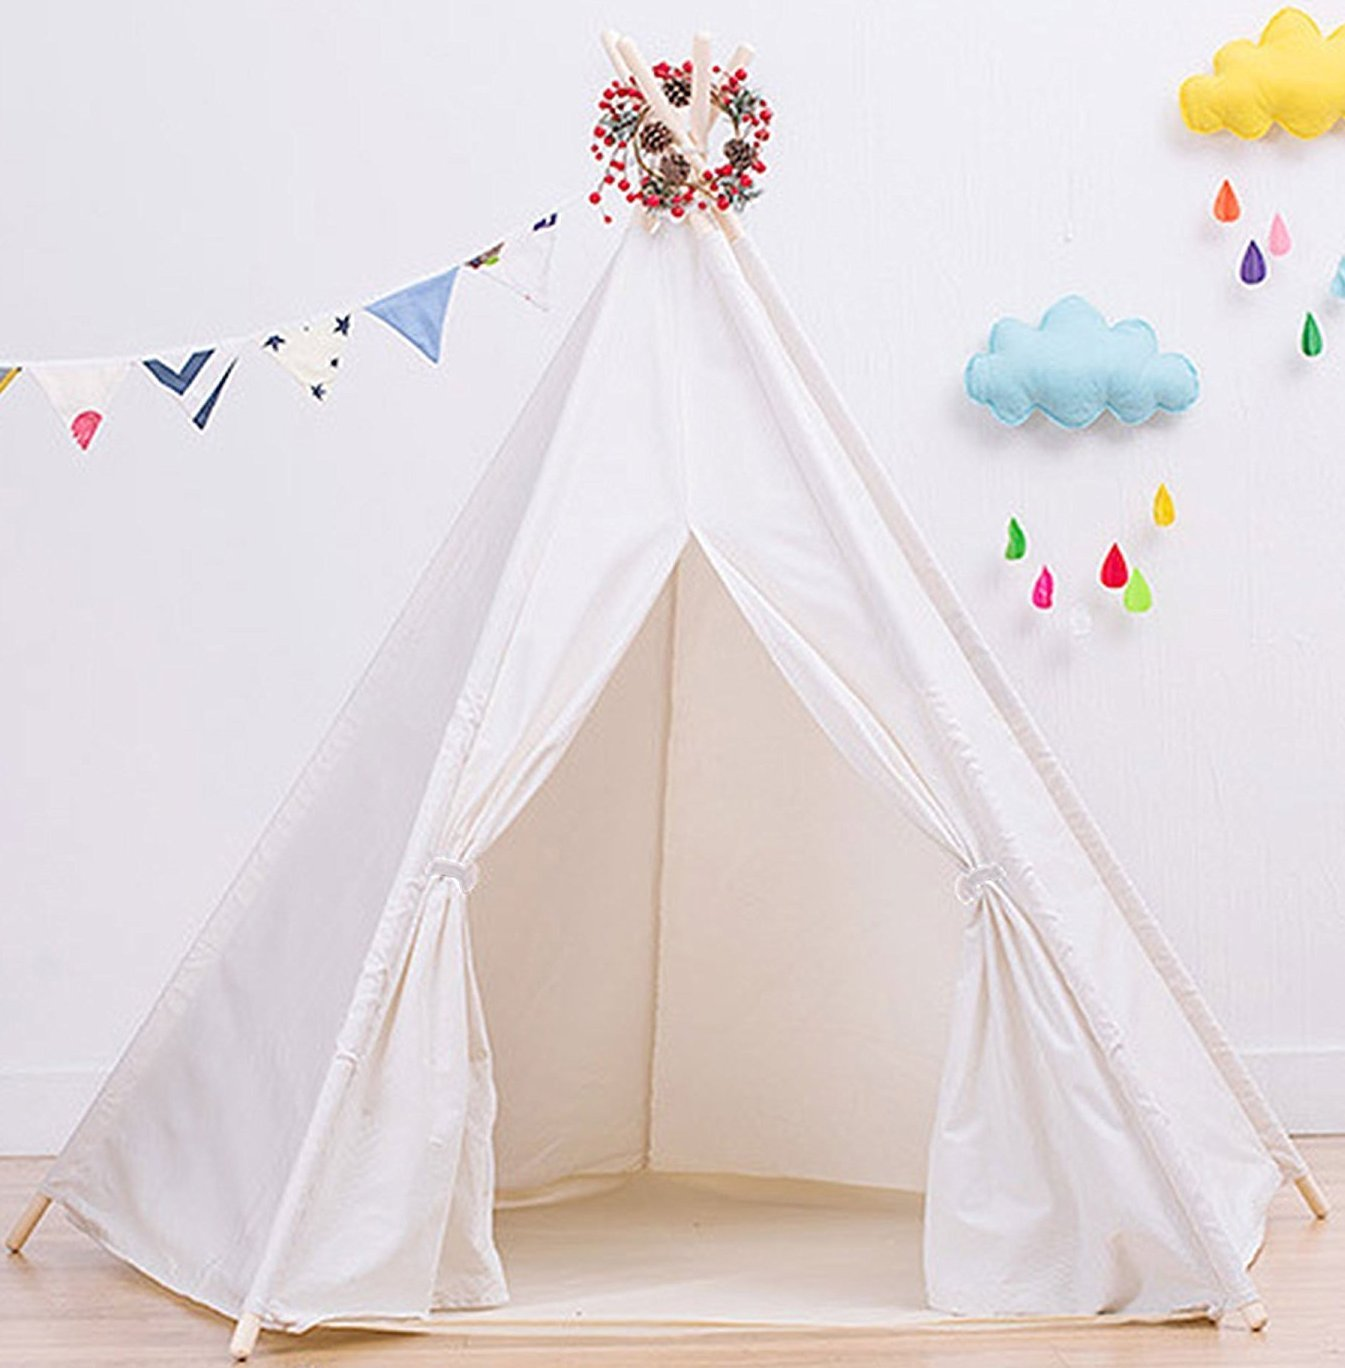 canvas tepee